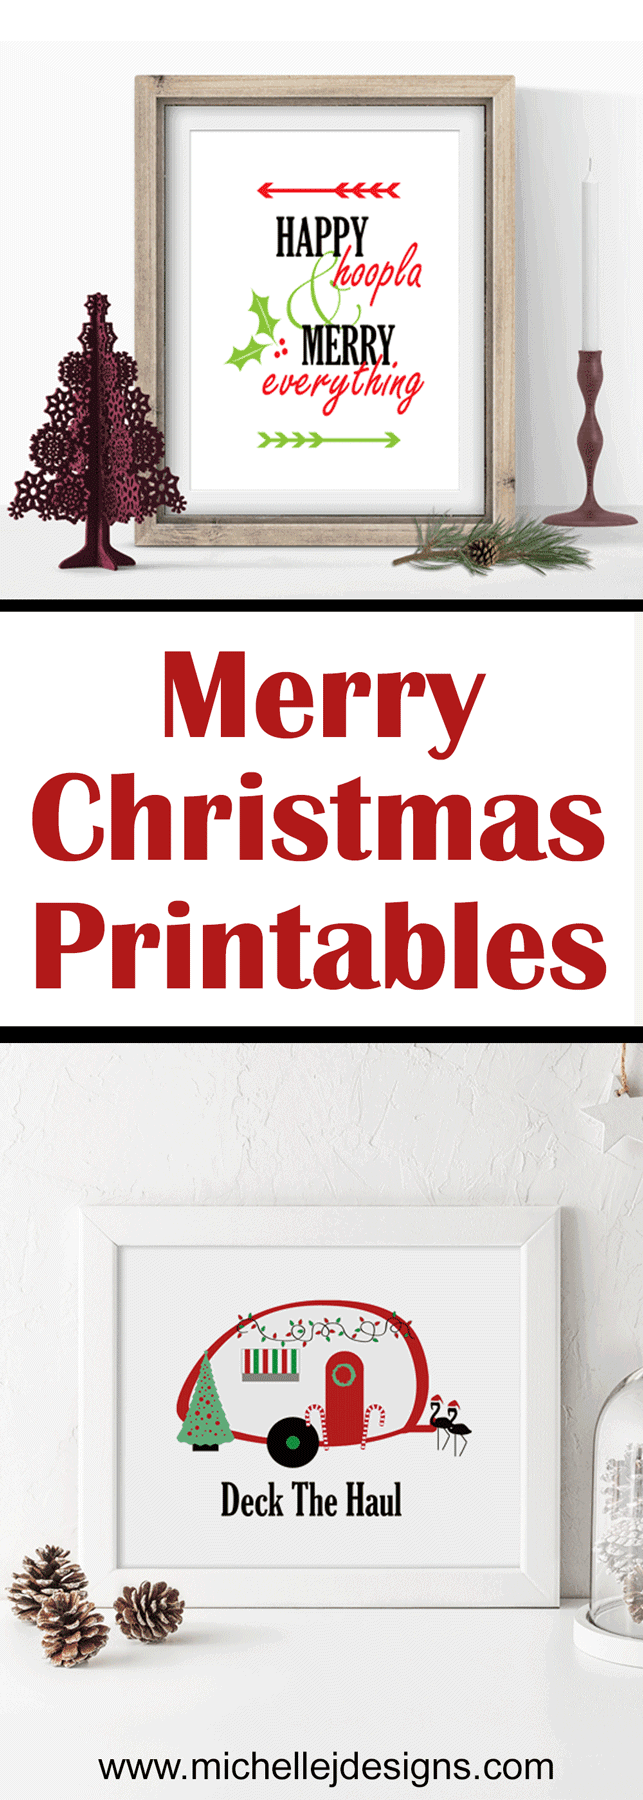 I created one of these Christmas Printables for my camping friend. The other is for the rest of us! - www.michellejdesigns.com